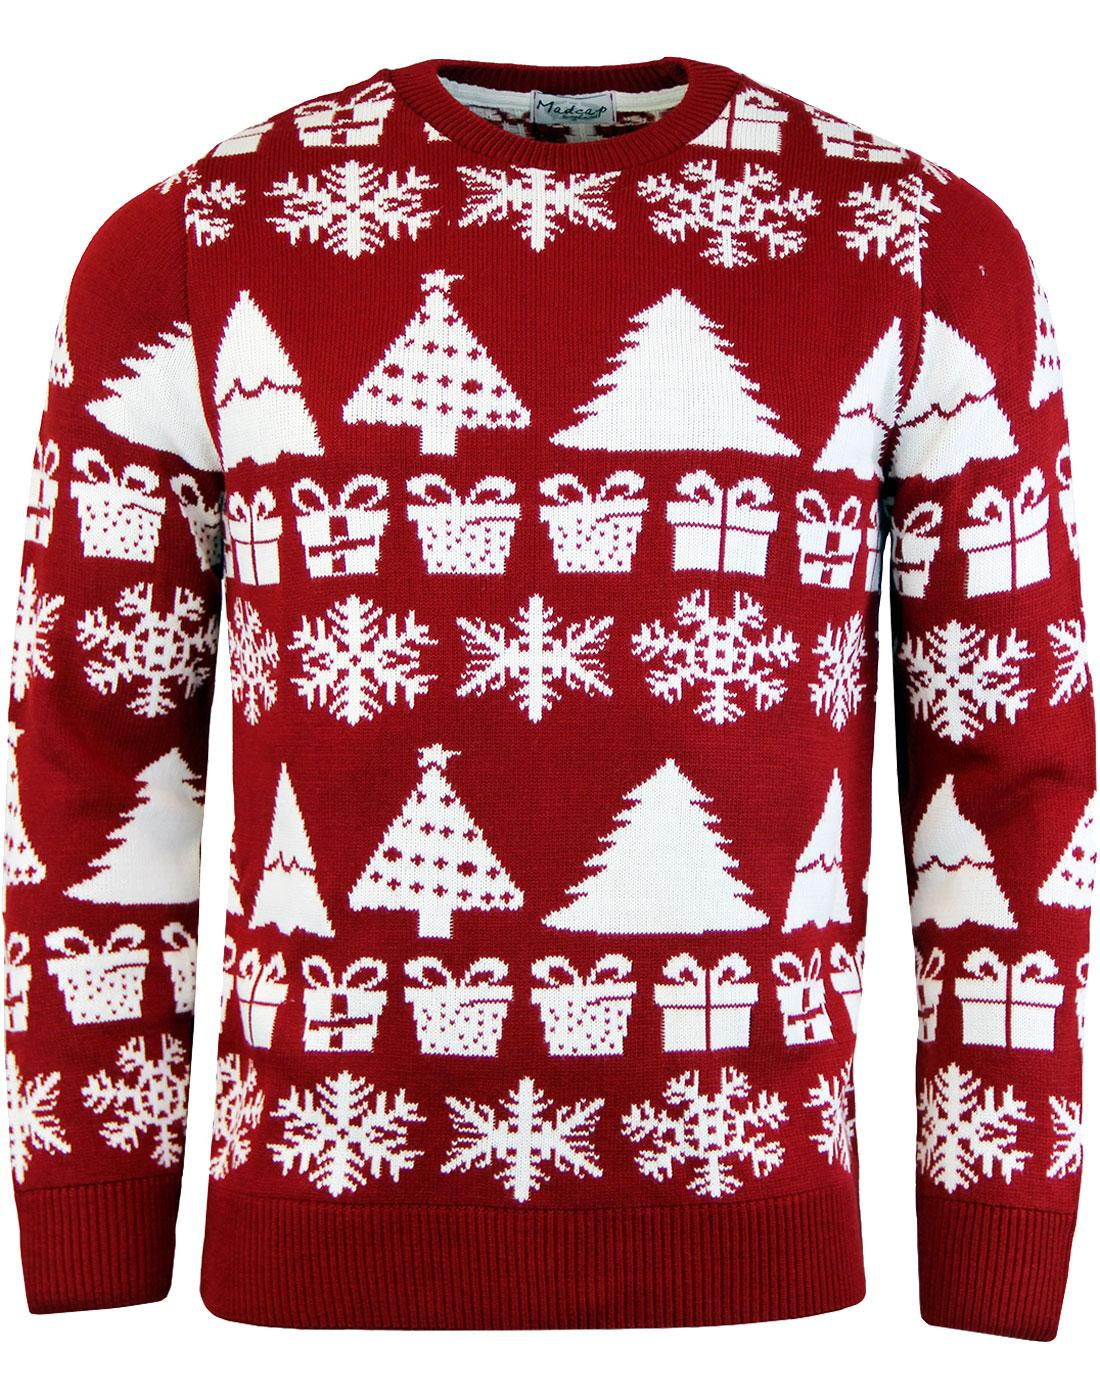 Christmas Jumpers.The Night Before Christmas Jumper Retro Knit Top